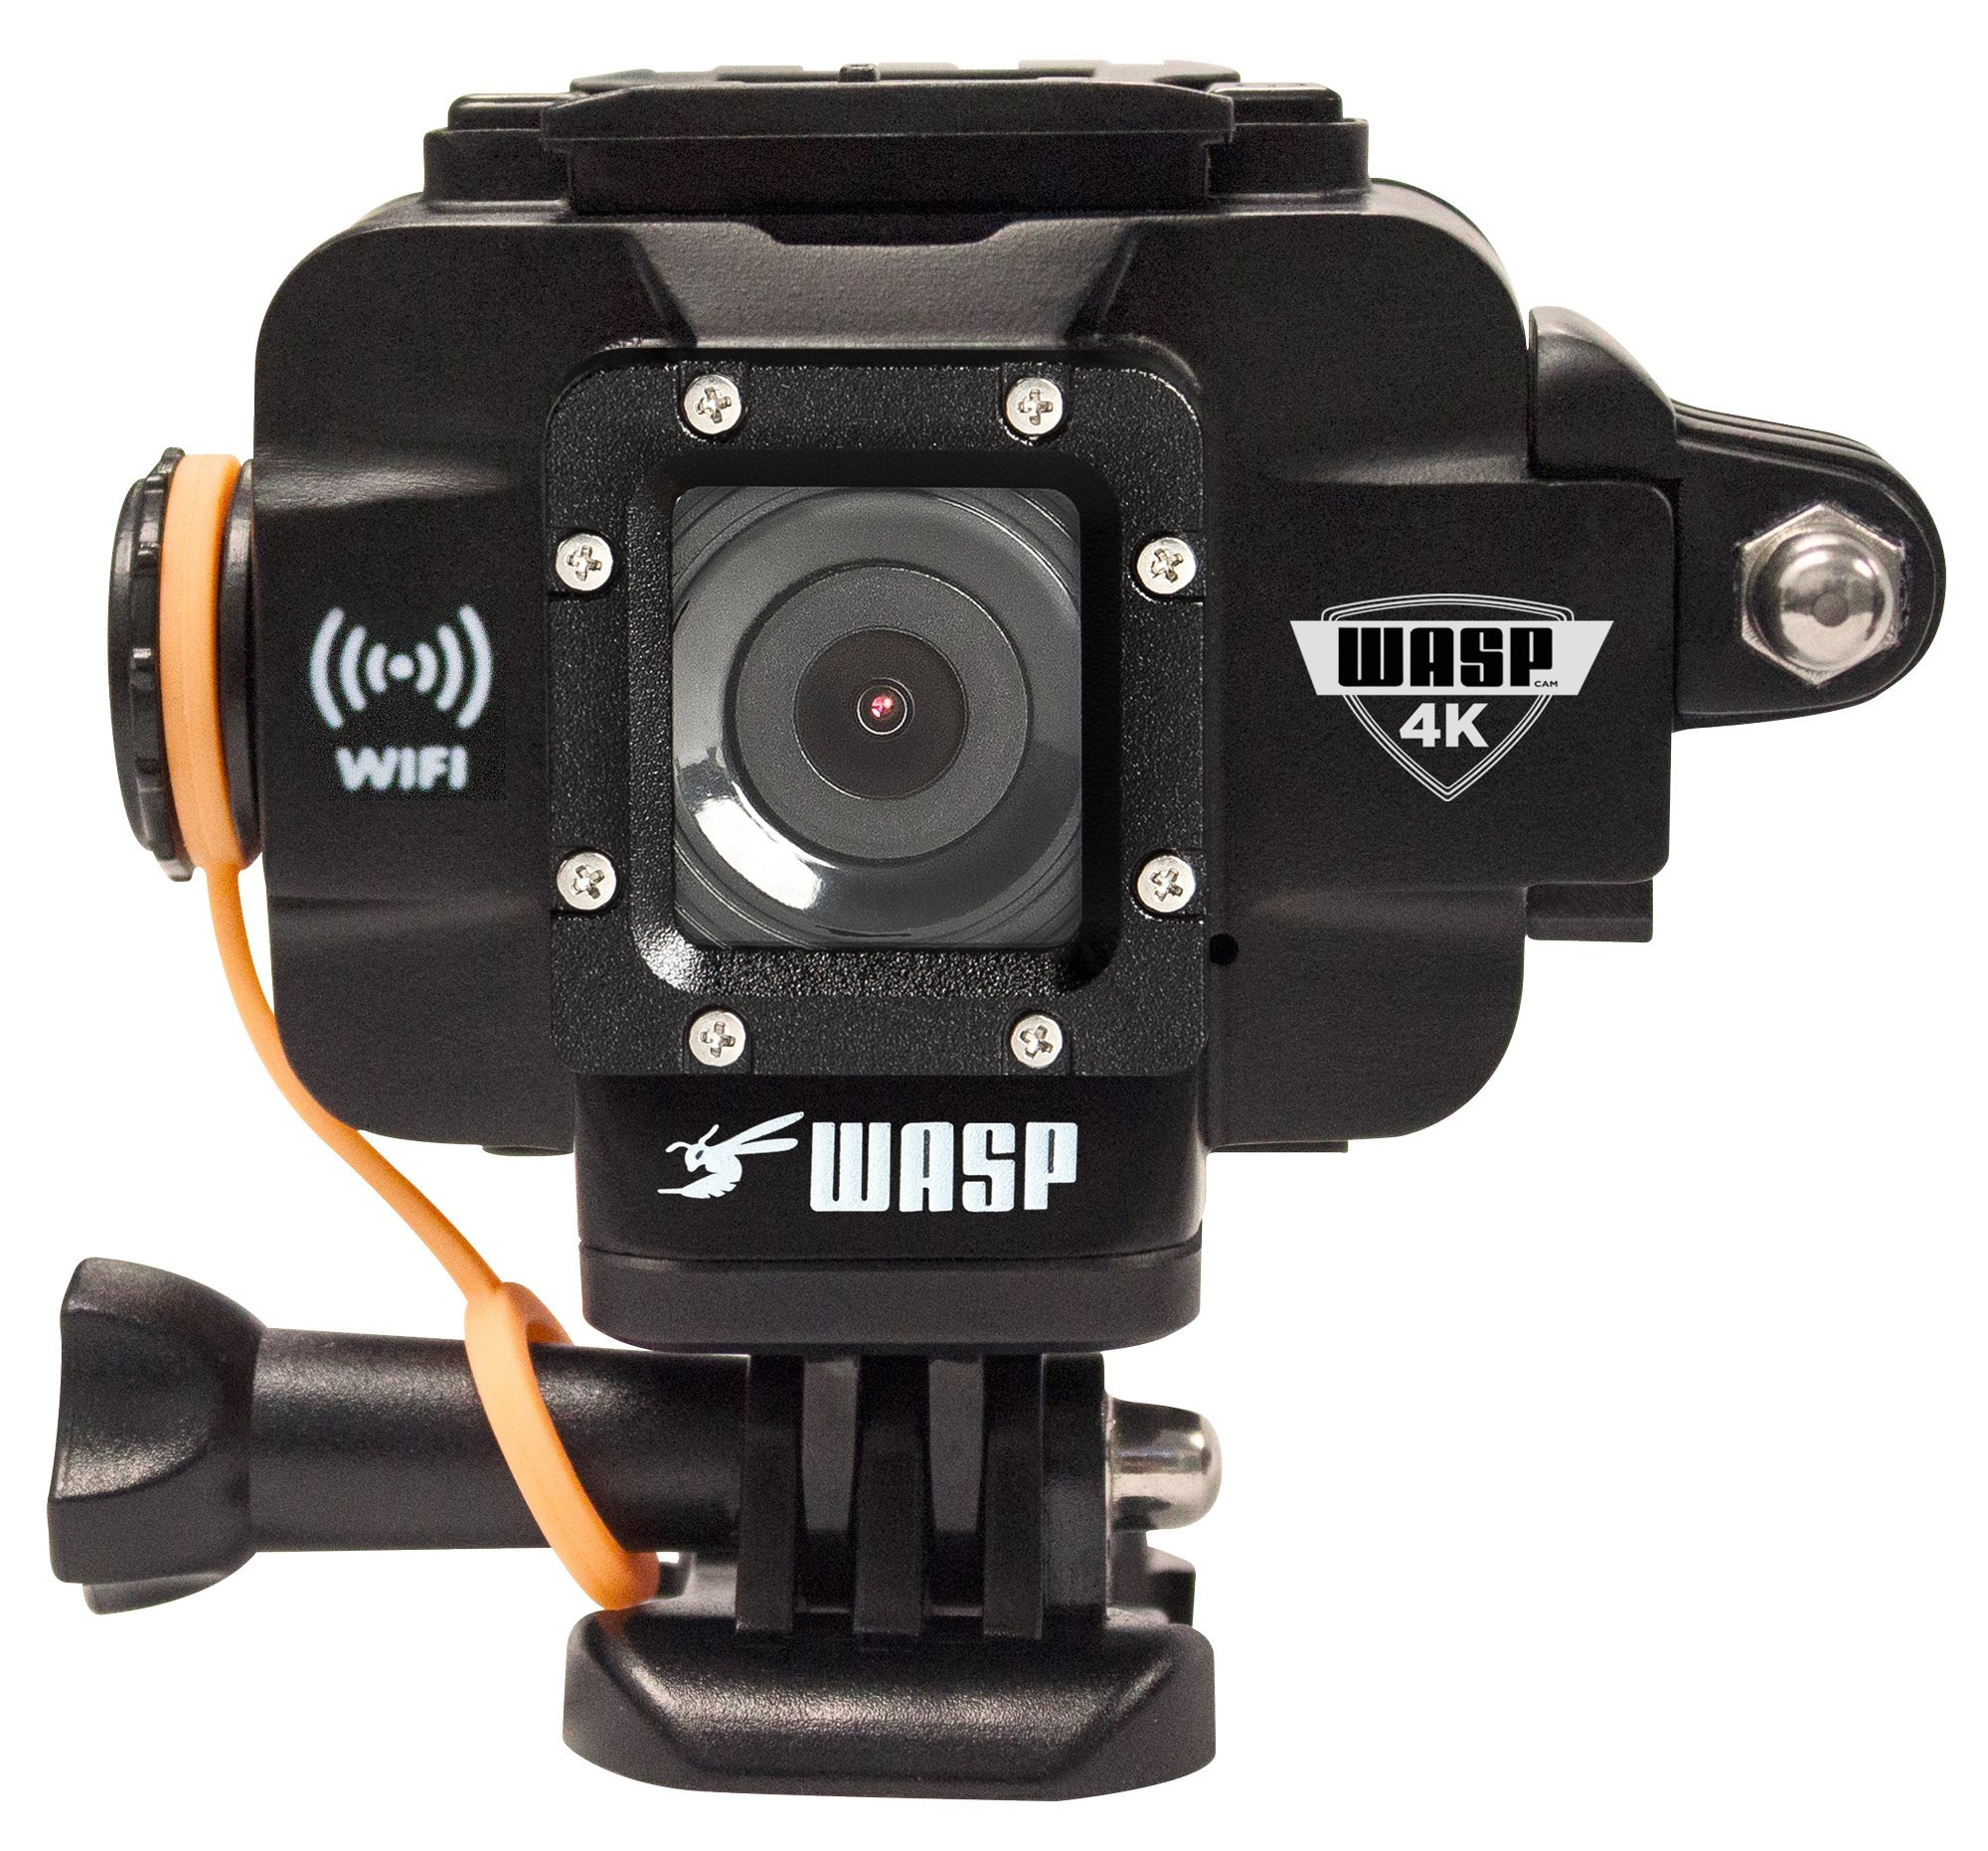 WASPcam 4K 9907 Action-Sports Camera, Black by WASPcam